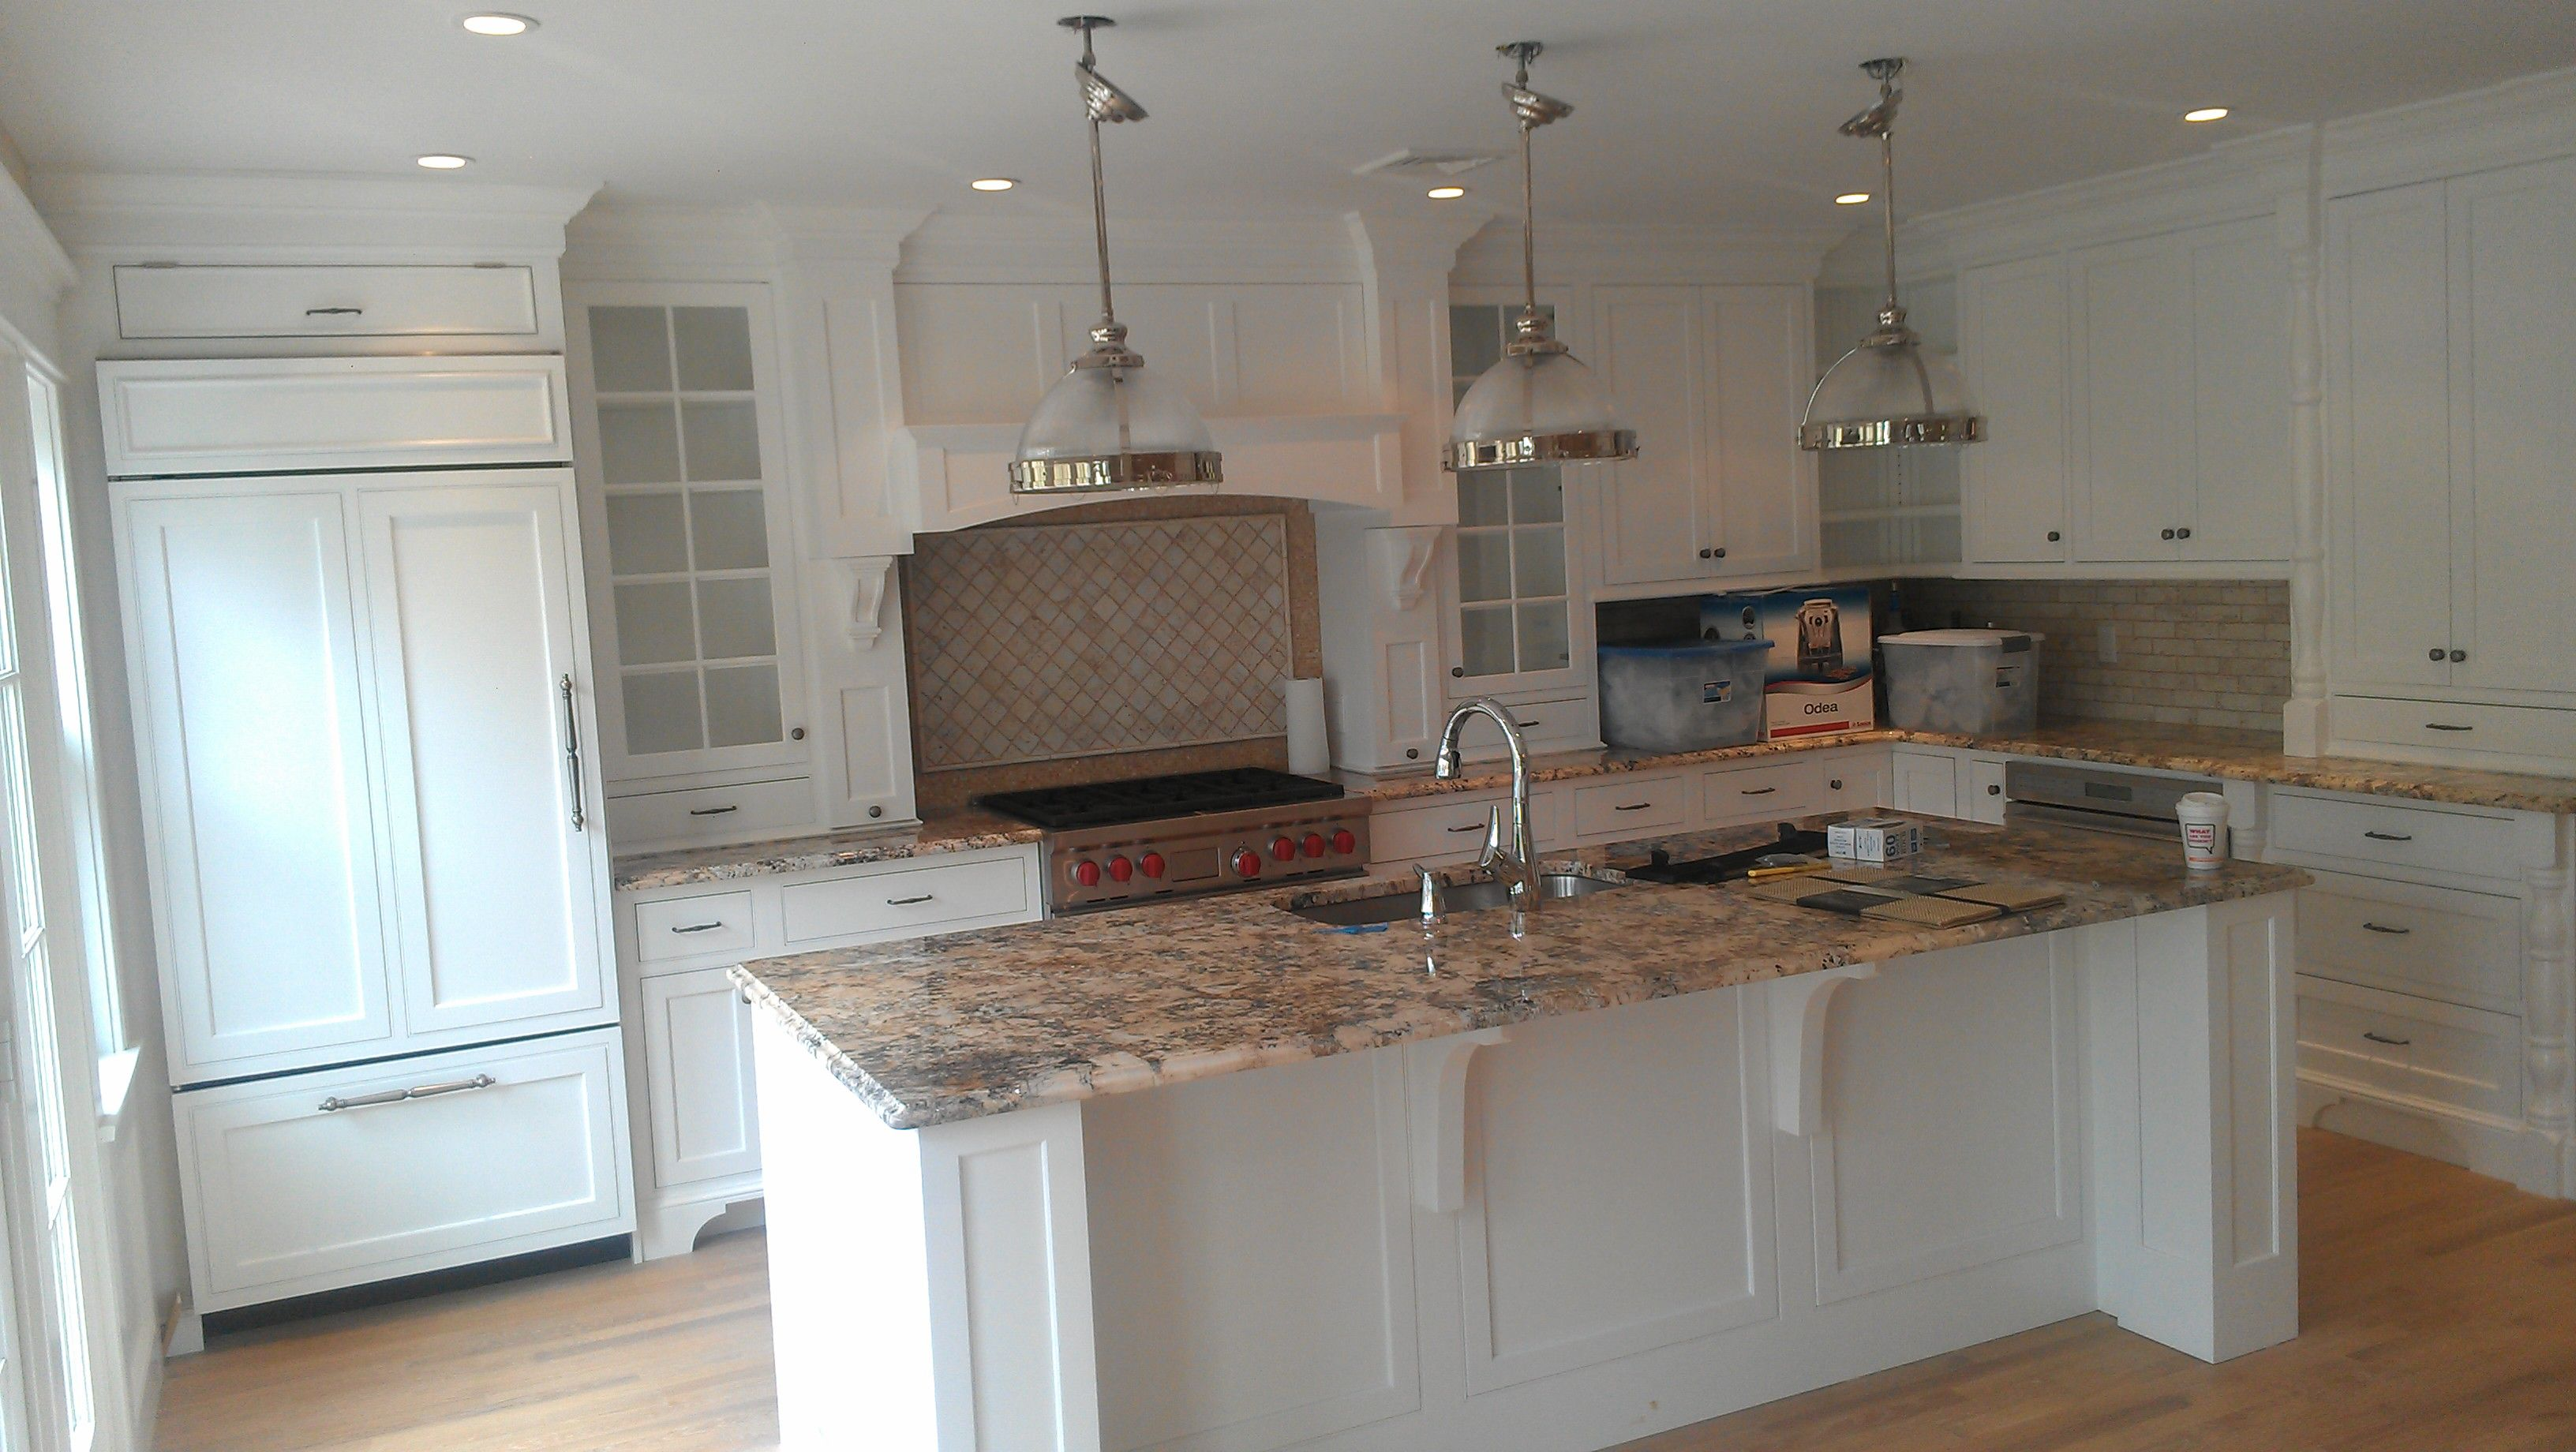 Cape Kitchens Designer Joe Cheney Candlelight Cabinetry Traditional Kitchen Schrock Cabinets